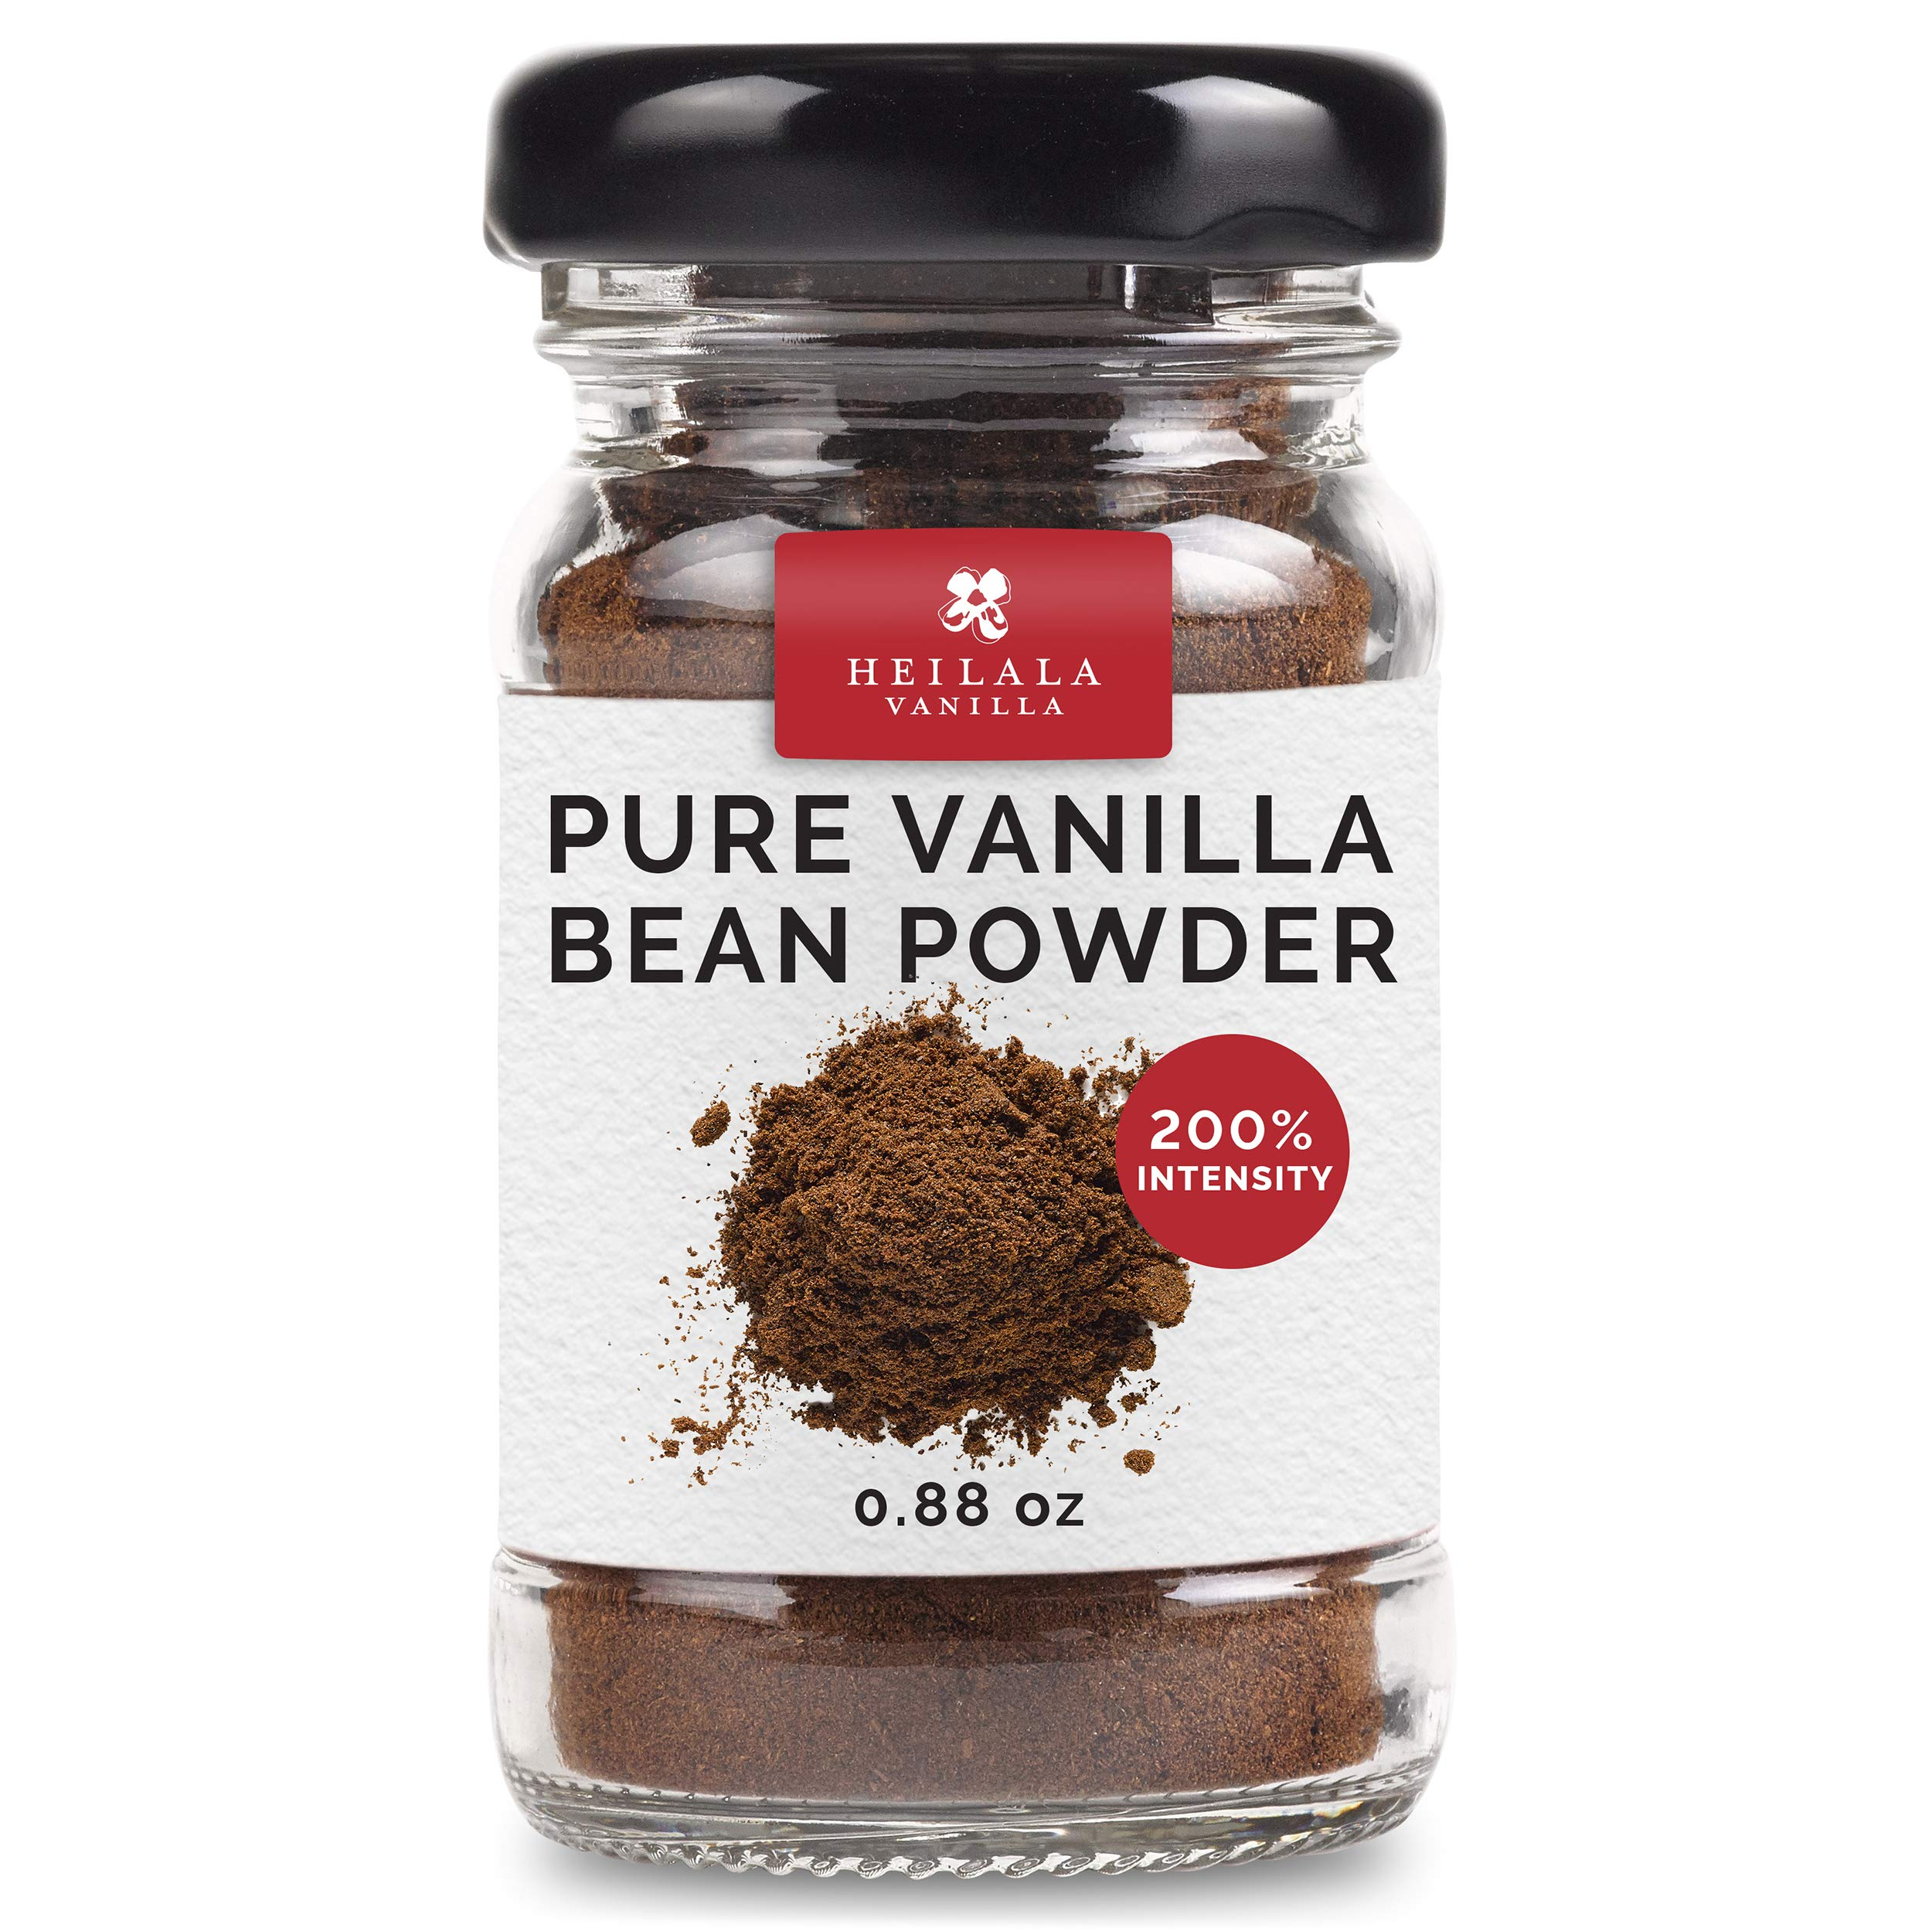 Vanilla Bean Powder - Pure Ground Vanilla Beans, Premium Bourbon Variety, Raw, Unsweetened, Ethically Sourced & Hand-Picked from Polynesia, Perfect for Sugar-Free & Raw Recipes, 0.88 oz by Heilala